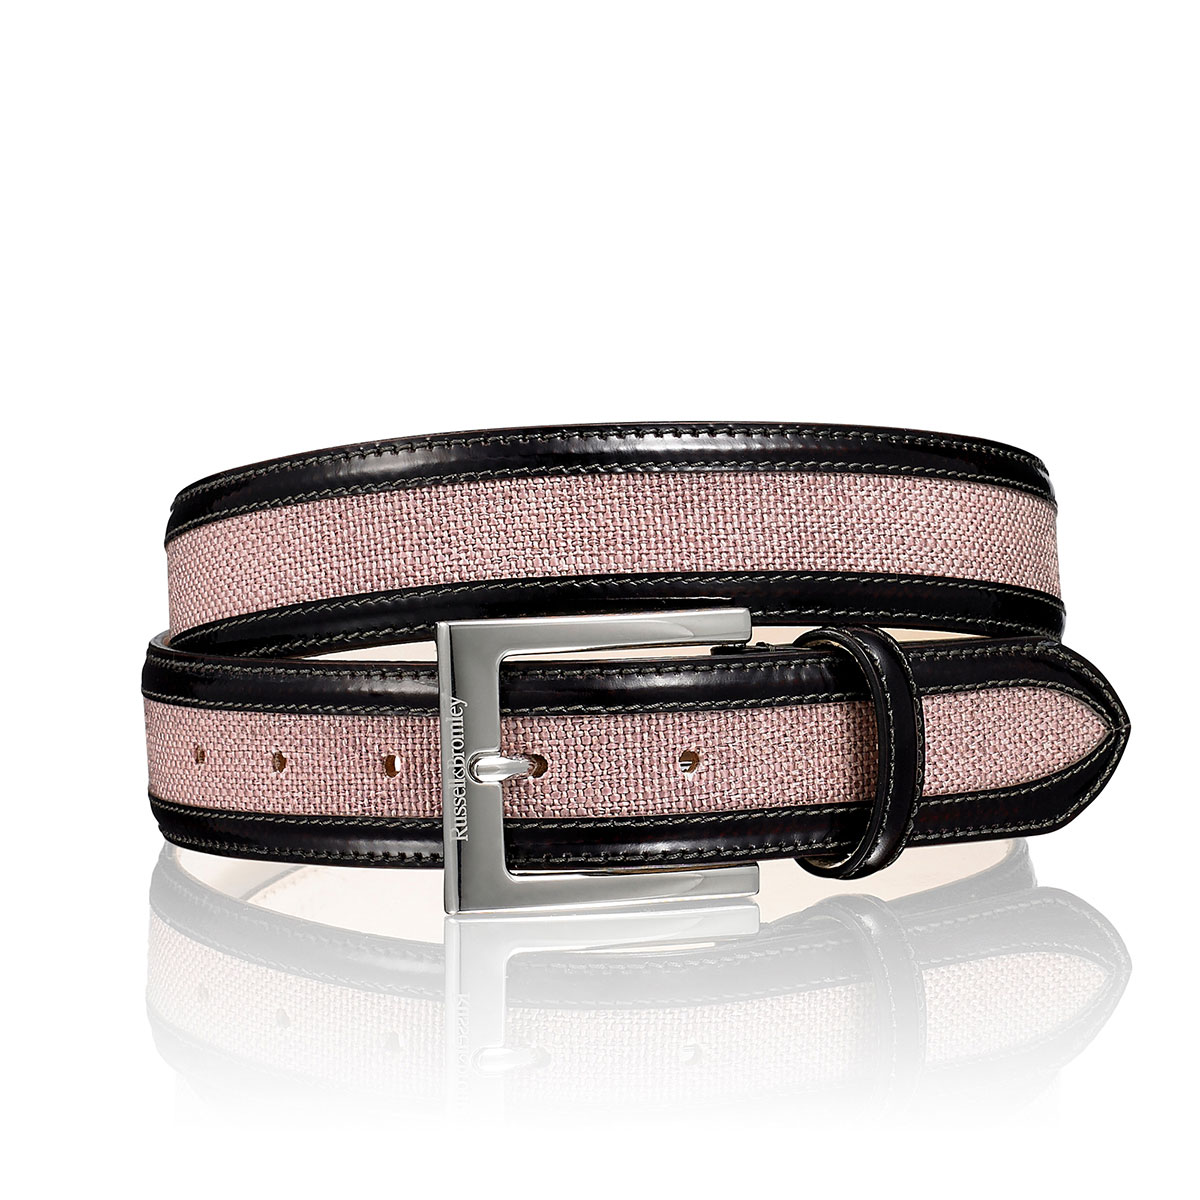 Russell and Bromley DOLCE Buckle And Keeper Belt